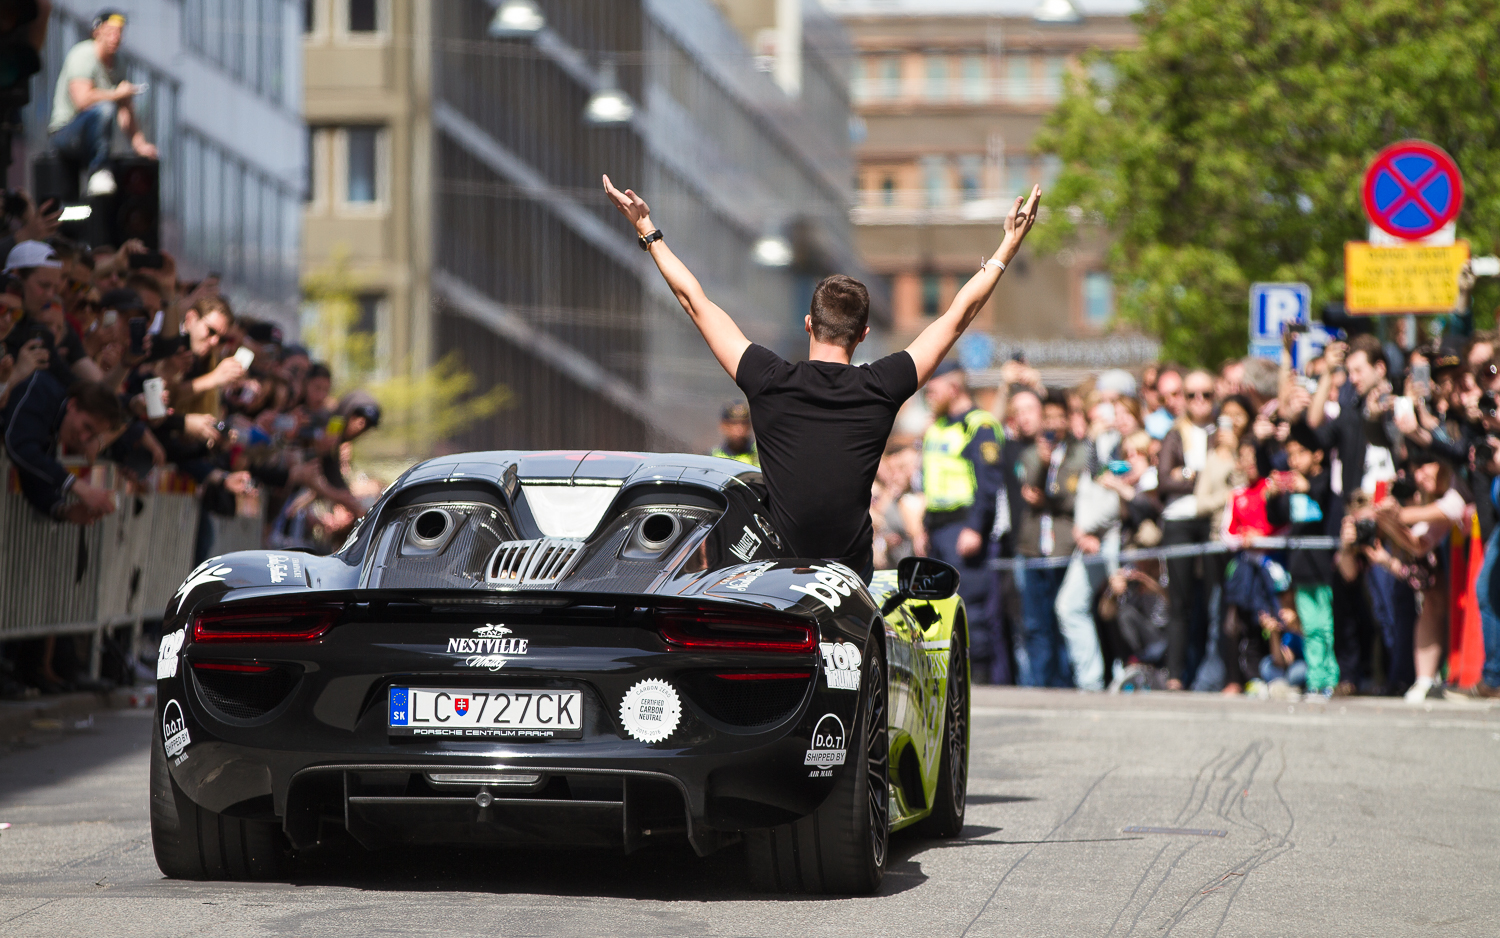 SMoores_15-05-24_Gumball 3000 Day 1_0586-Edit.jpg